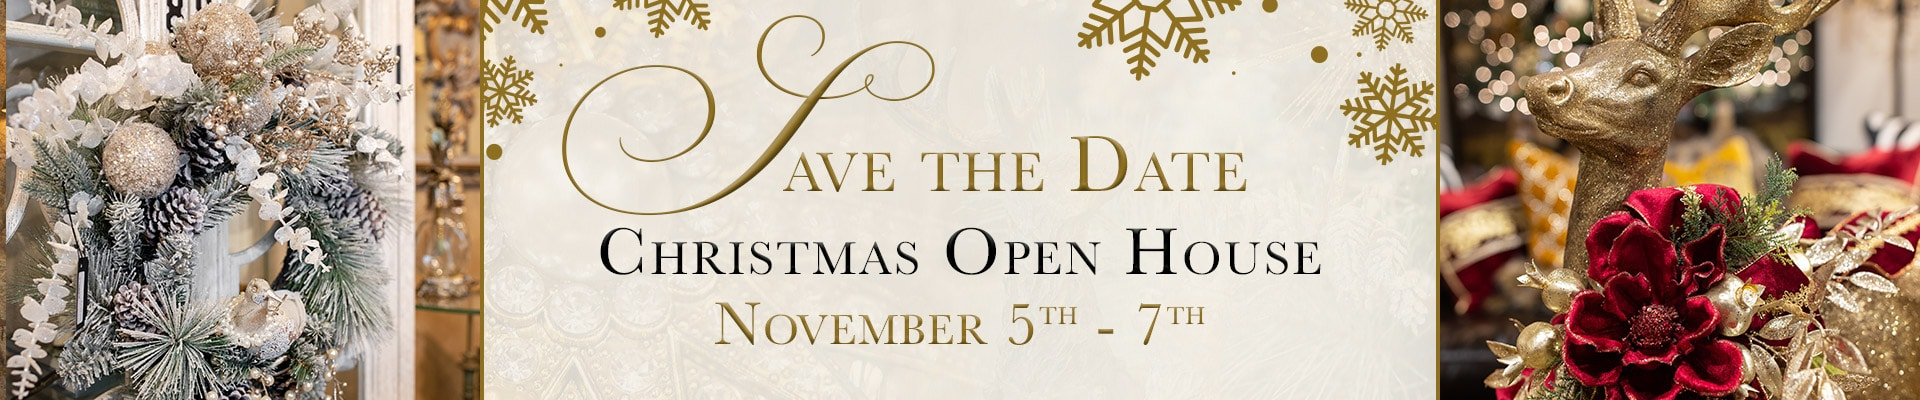 Linly Designs Christmas Open House